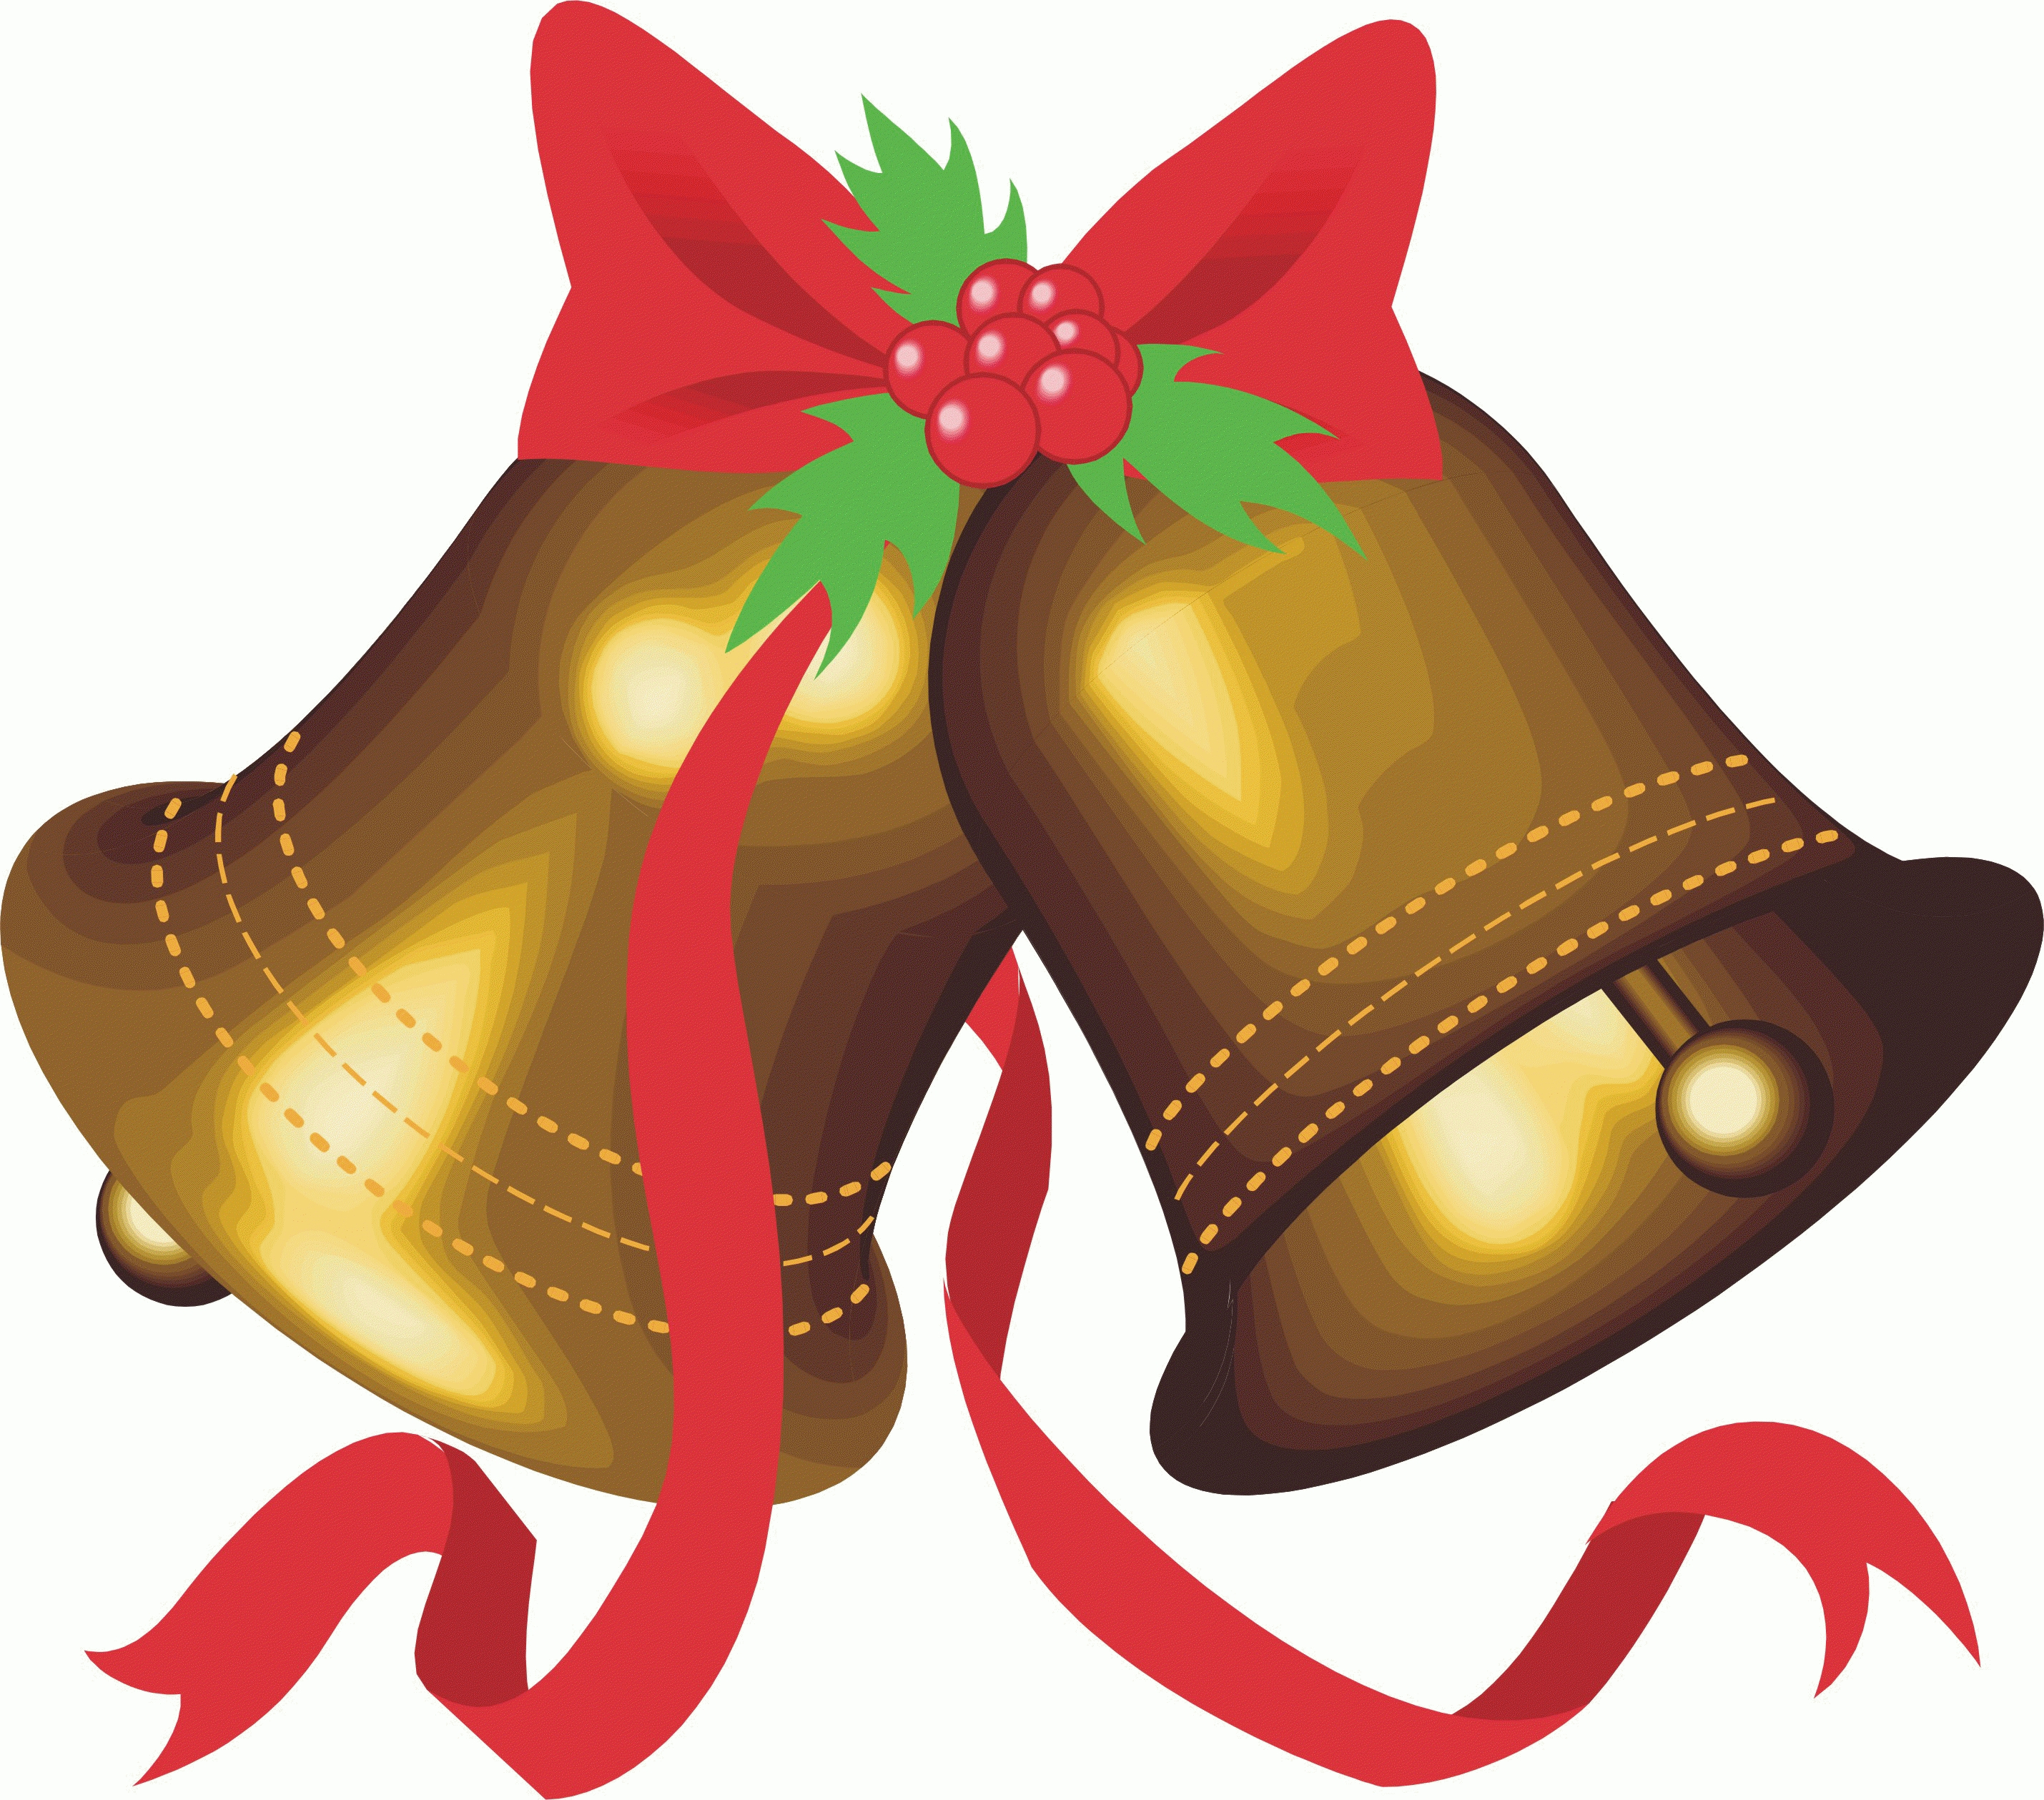 Bells clipart traditional. Christmas image art n